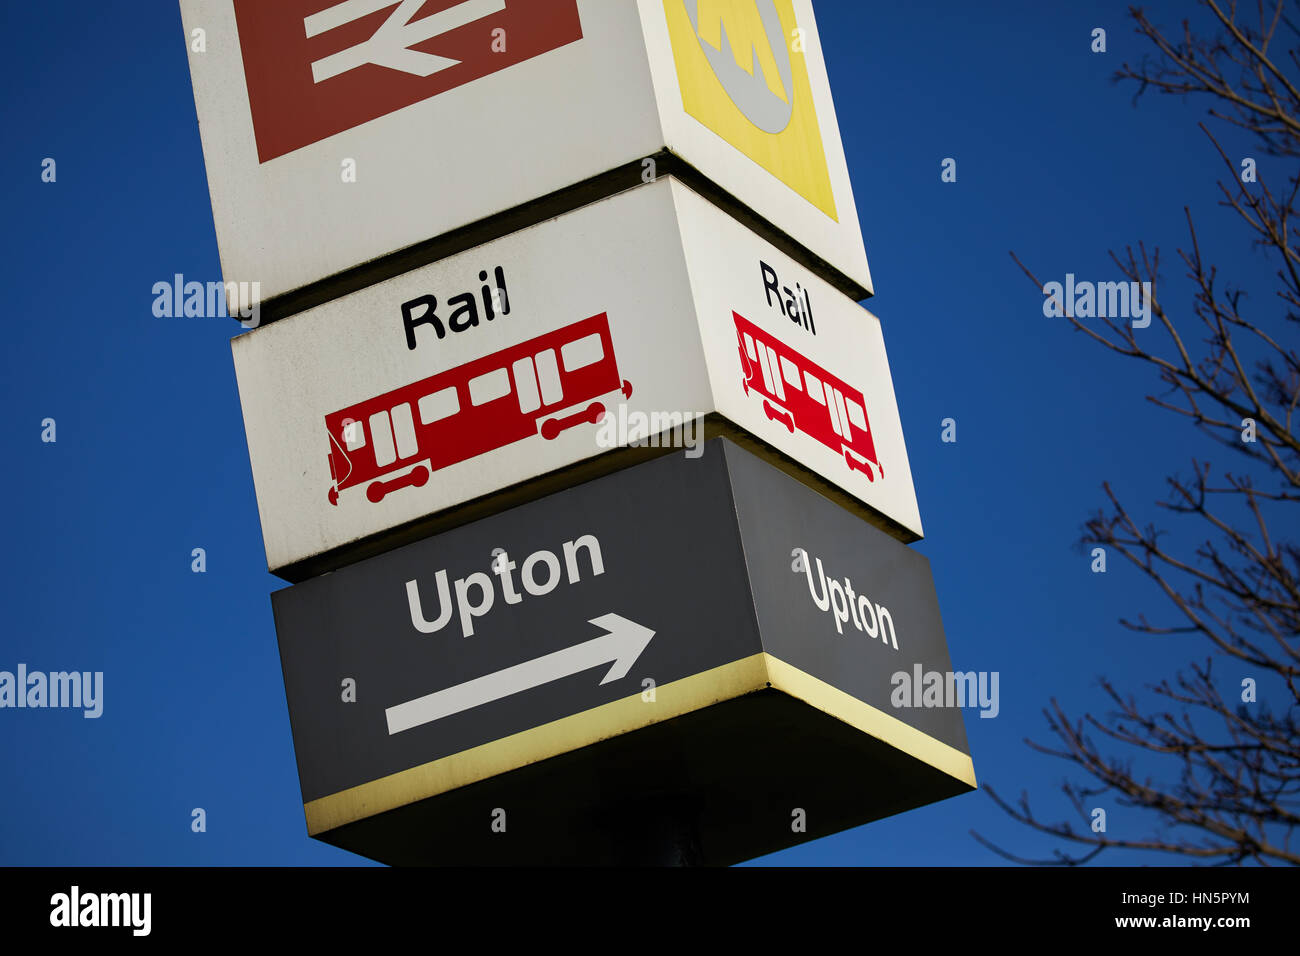 Blue sky on a sunny day, Upton railway station sign in Wallasey, Merseyside, Wirral, England, UK. - Stock Image